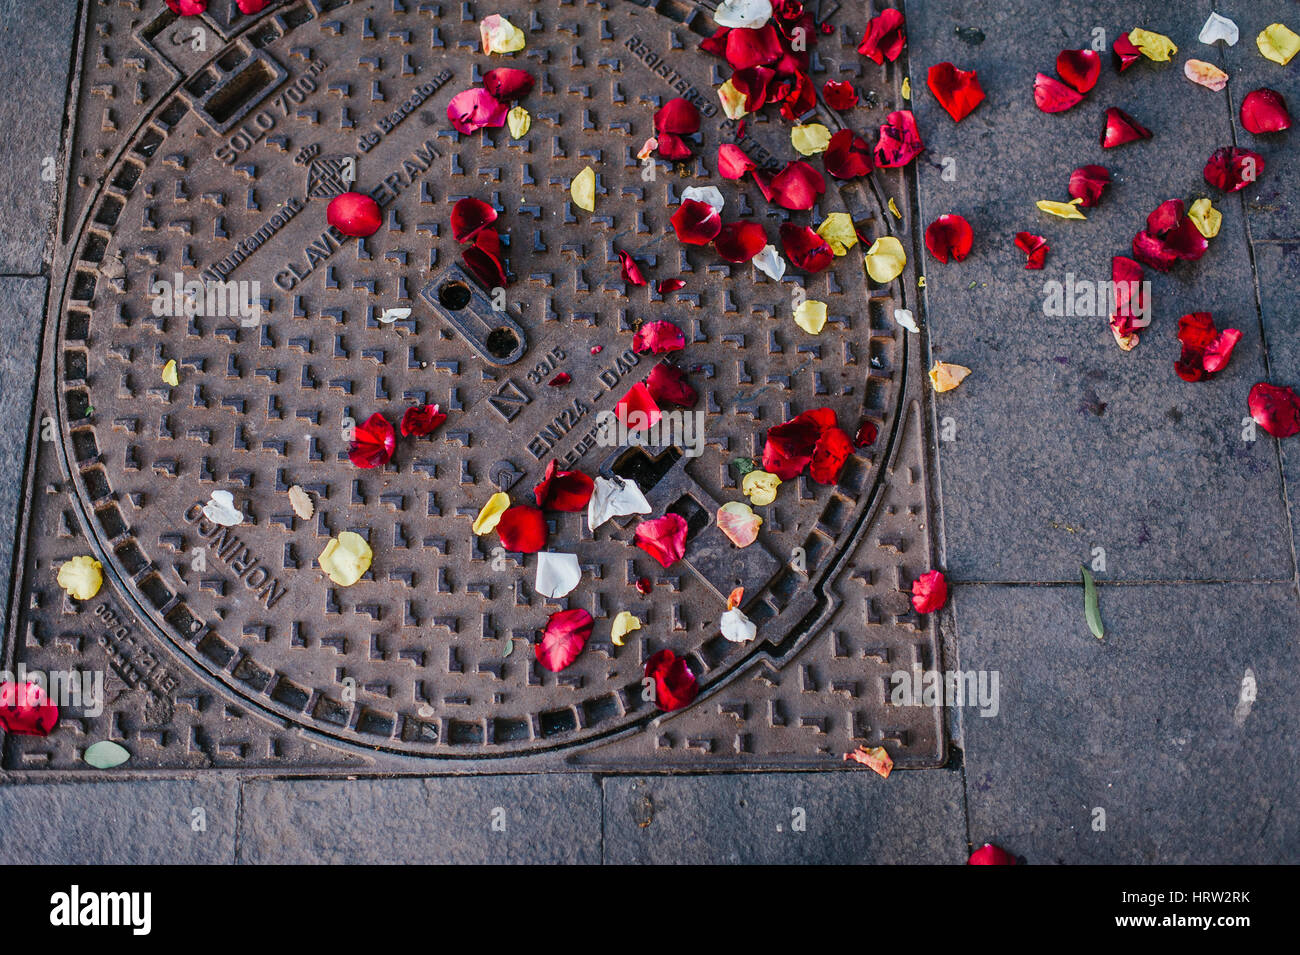 Rose petals thrown on a street in Barcelona Spain - Stock Image